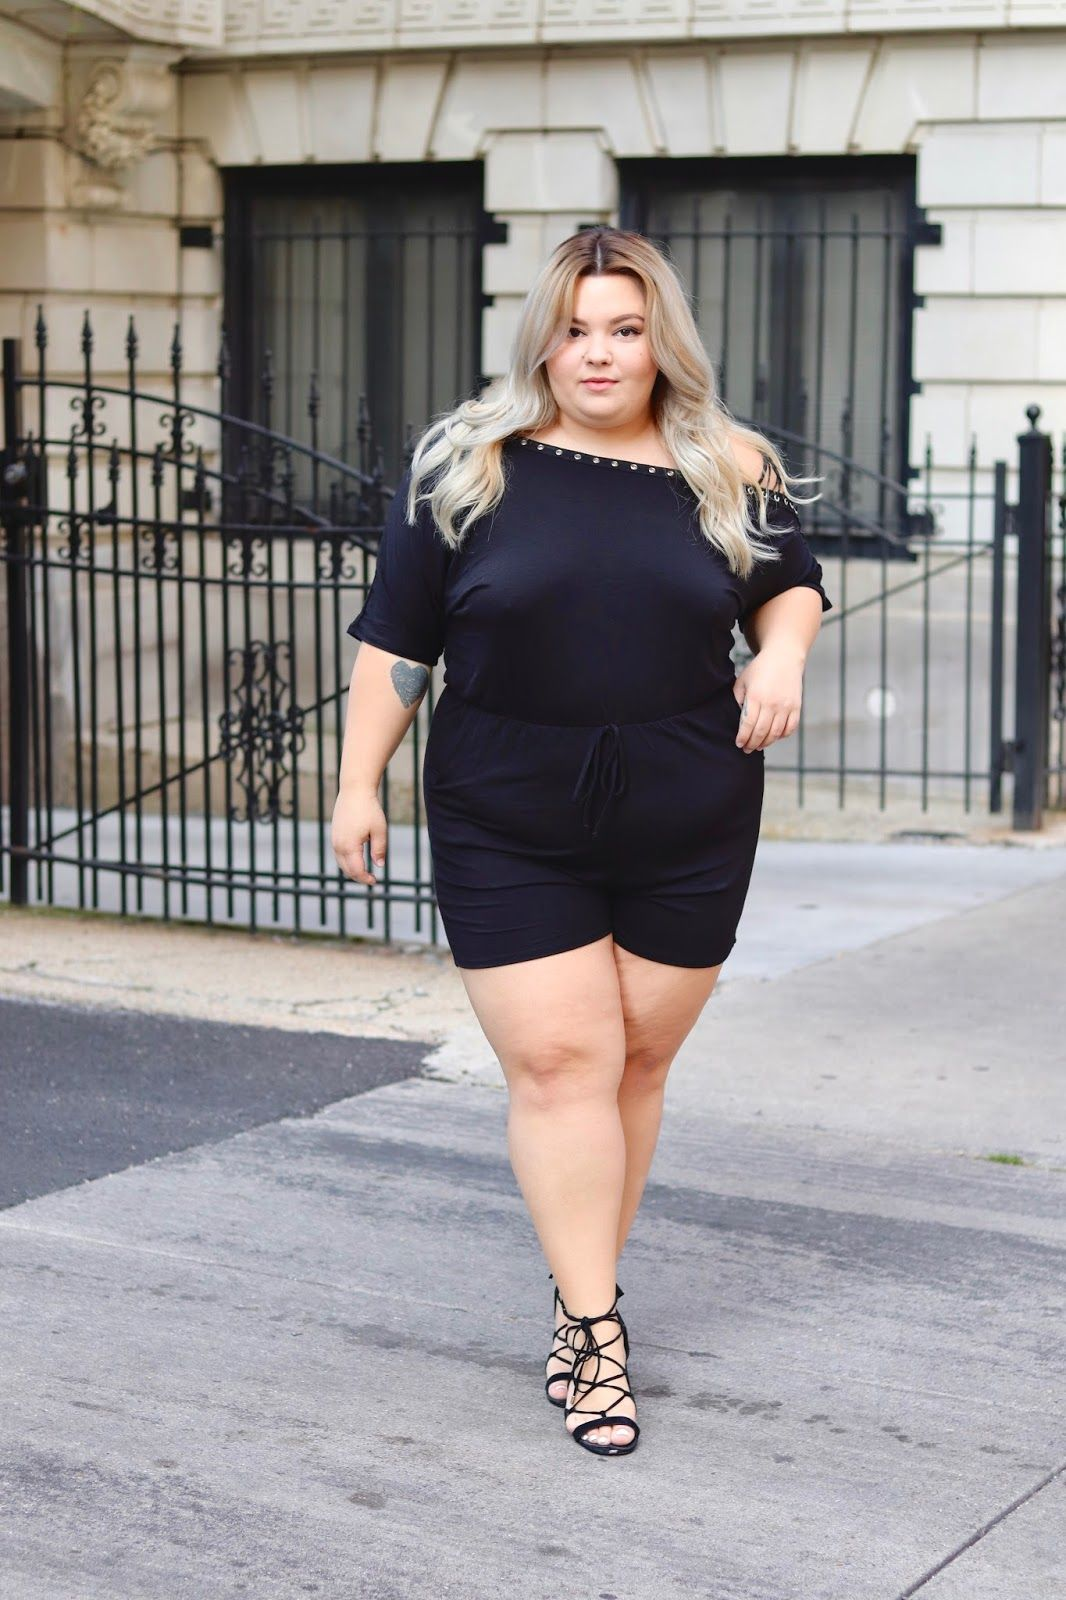 e669002b5ac chicago plus size fashion blogger